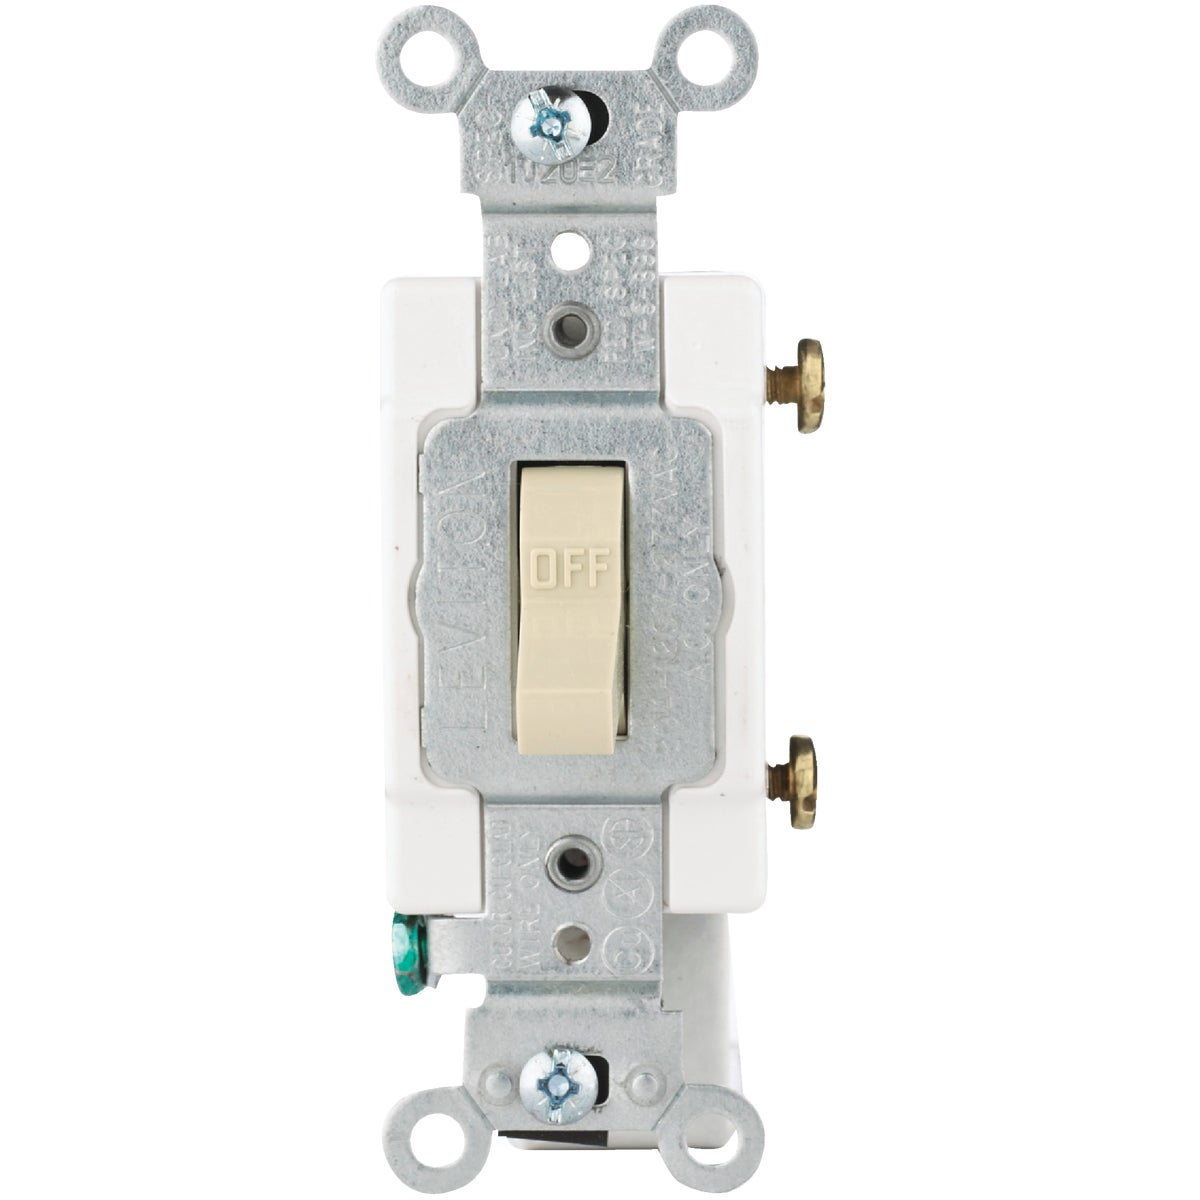 IV 1-POLE GRND SWITCH - S07-CS120-2IS by Leviton Mfg Co